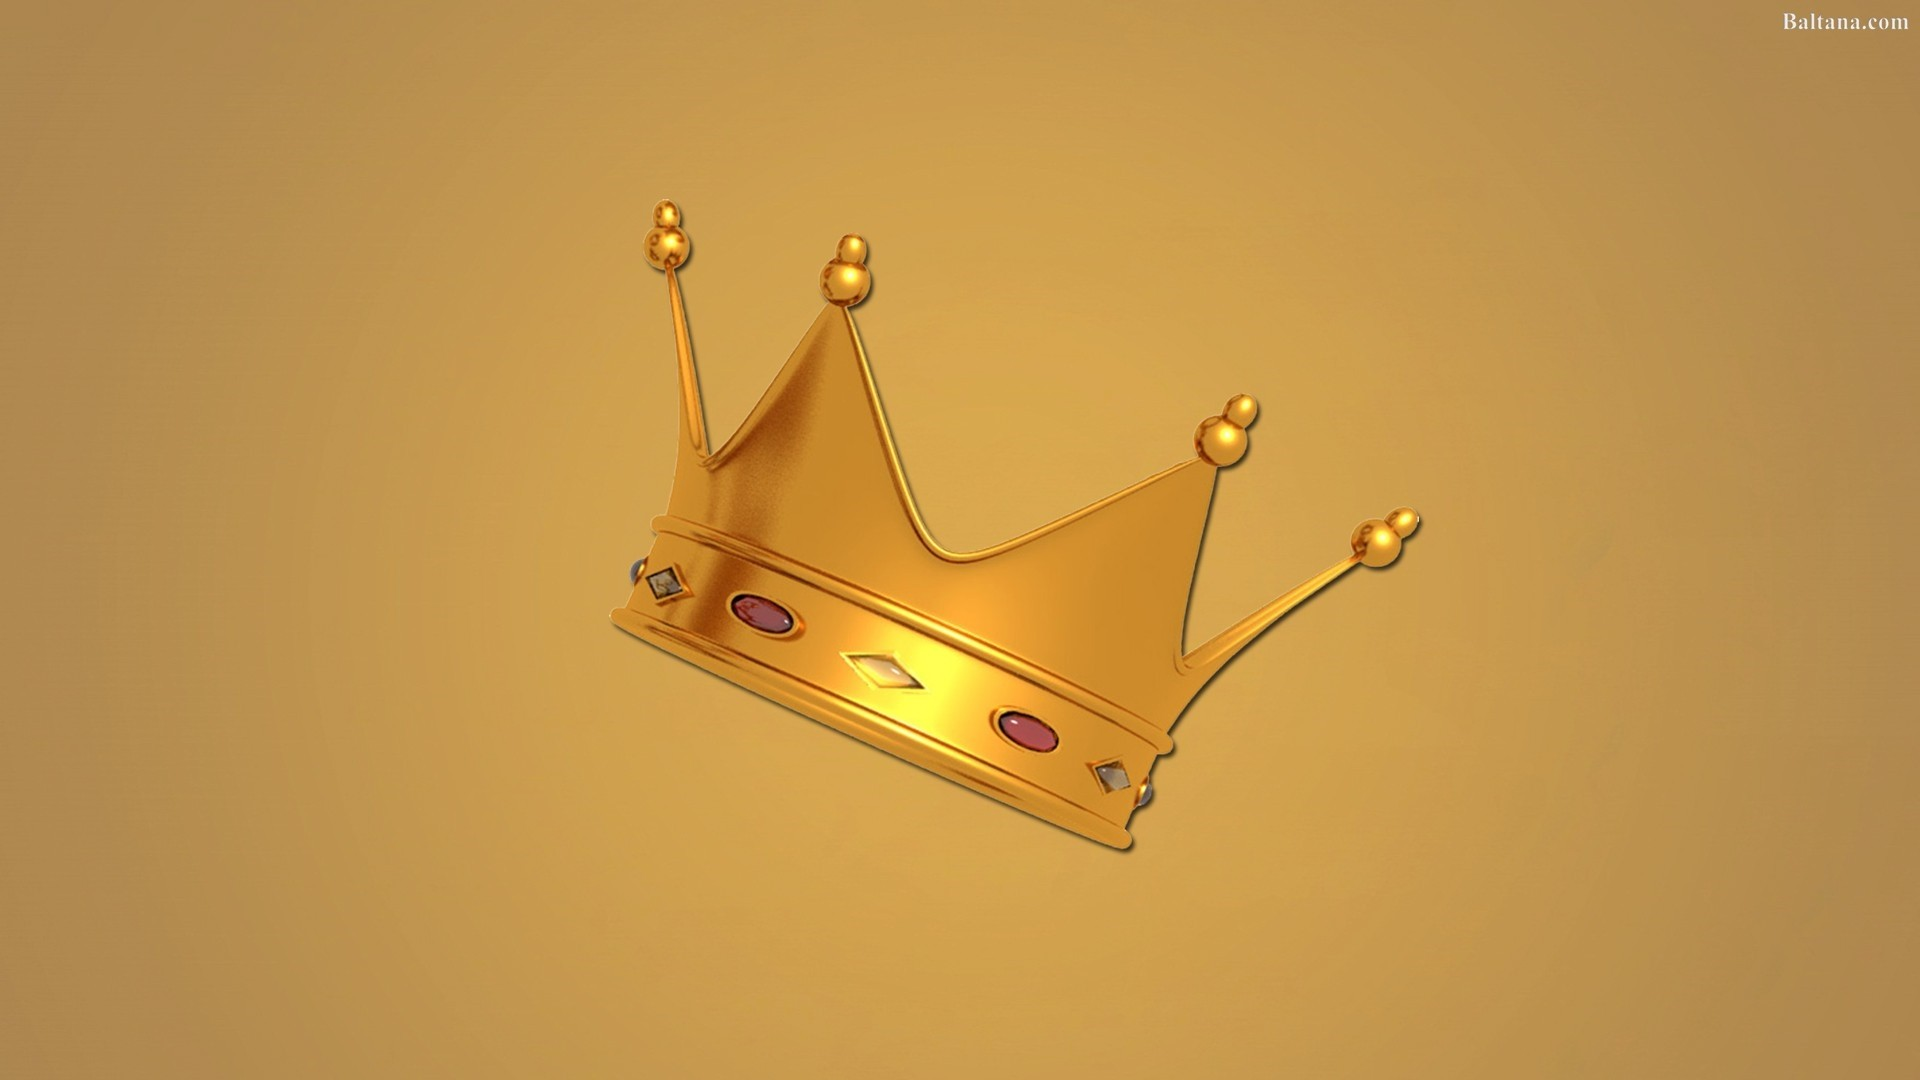 Crown Free Wallpaper and Background